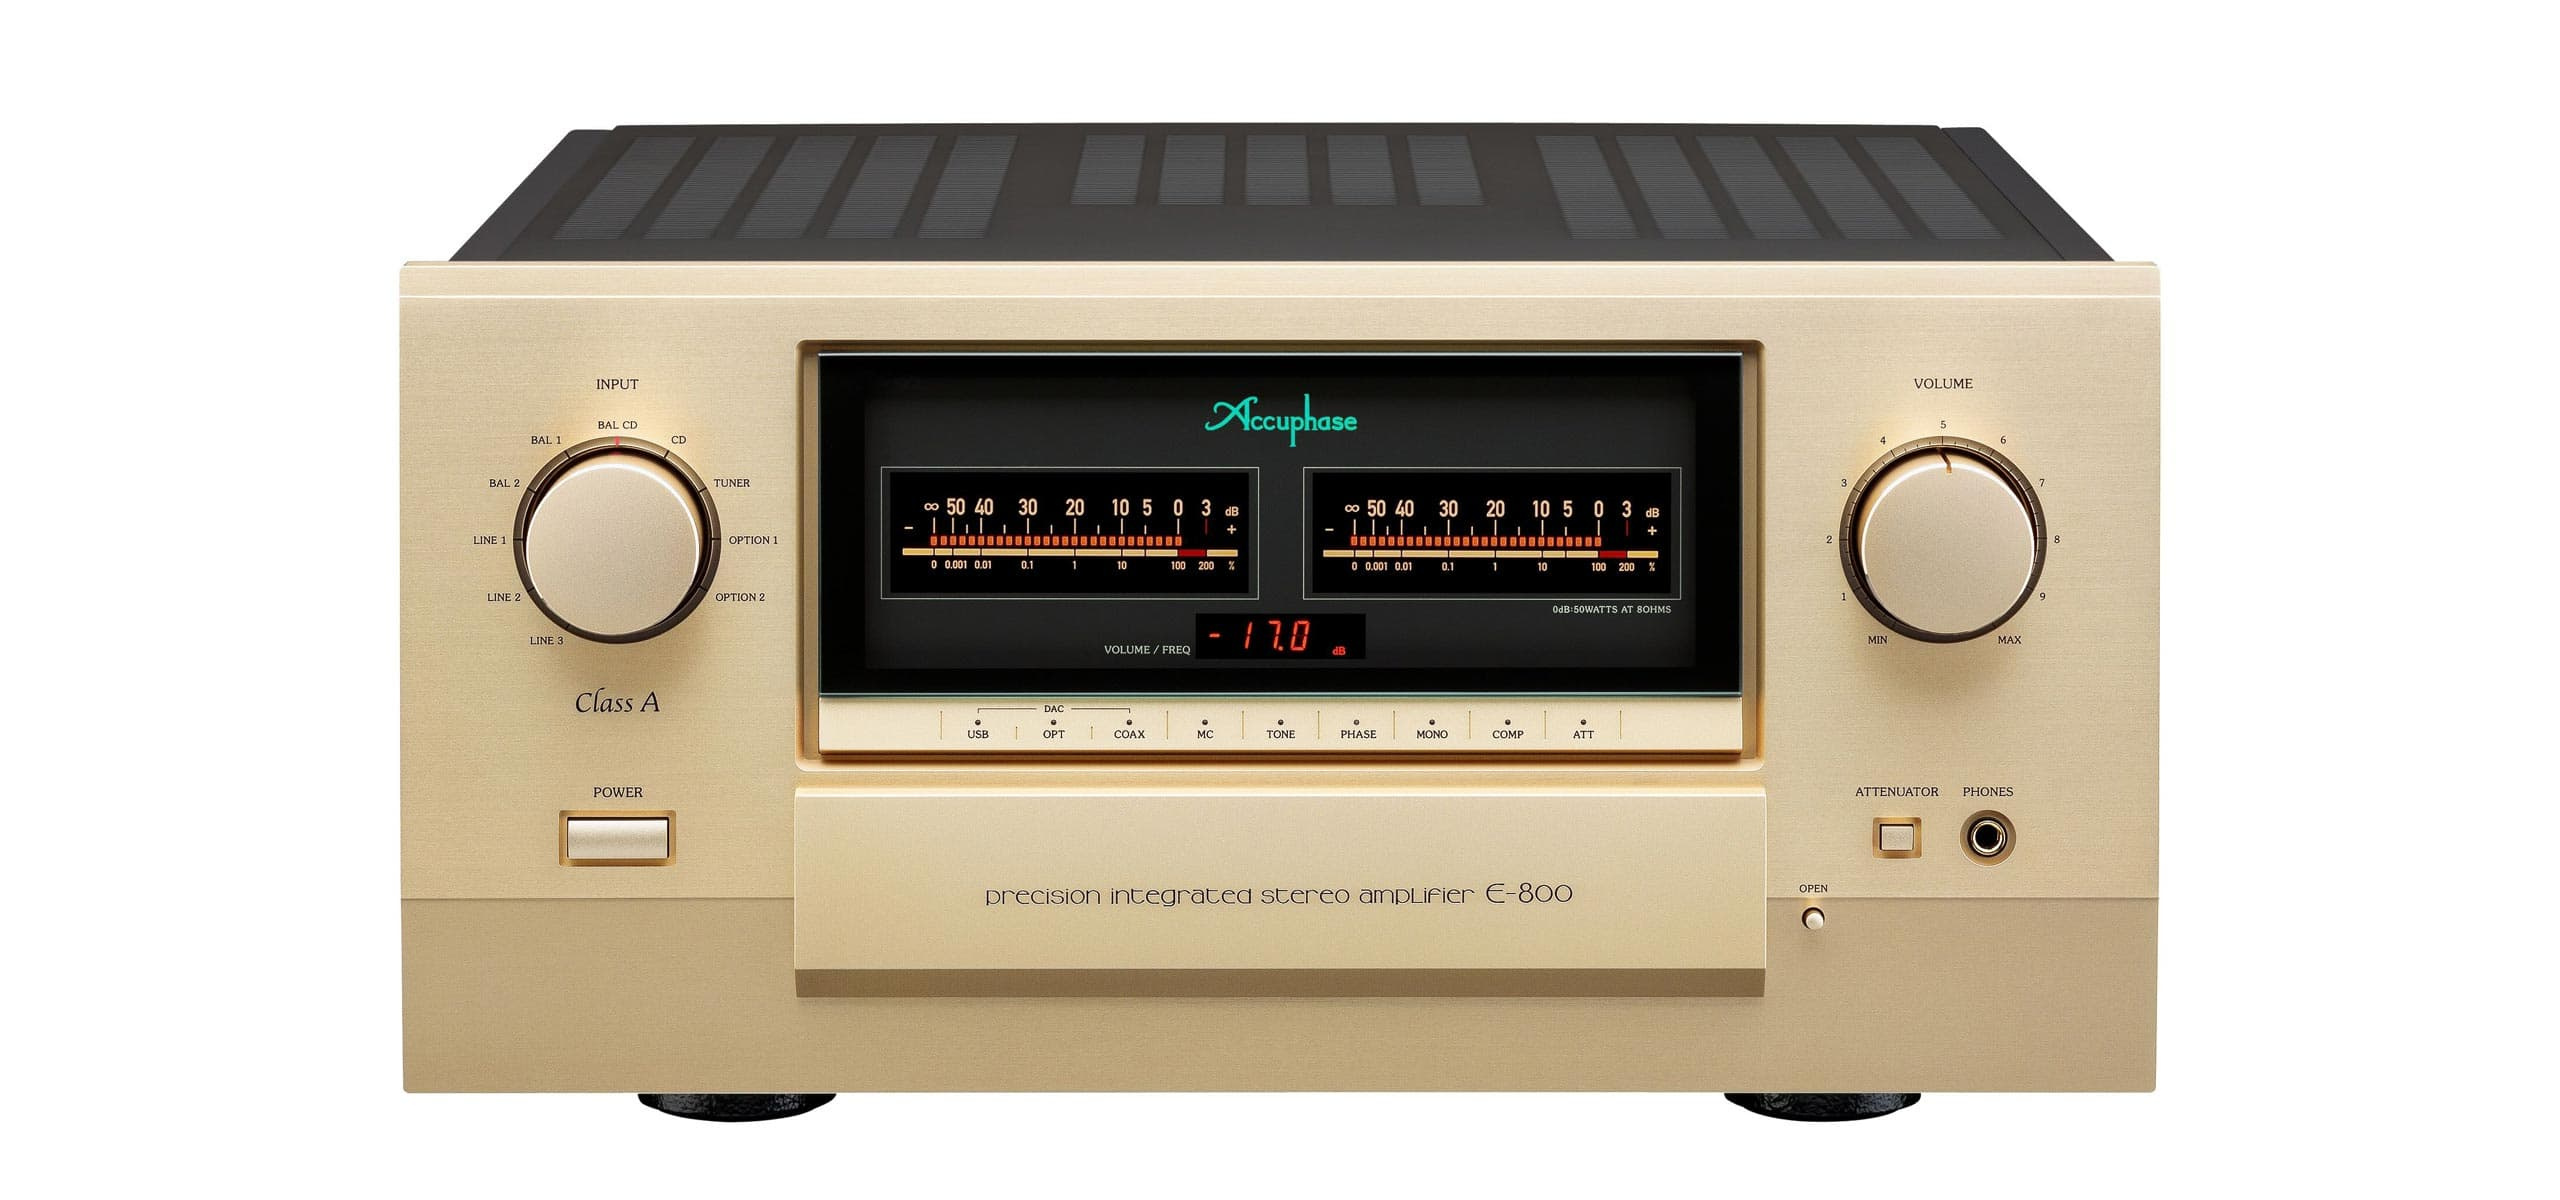 Accuphase amplfier